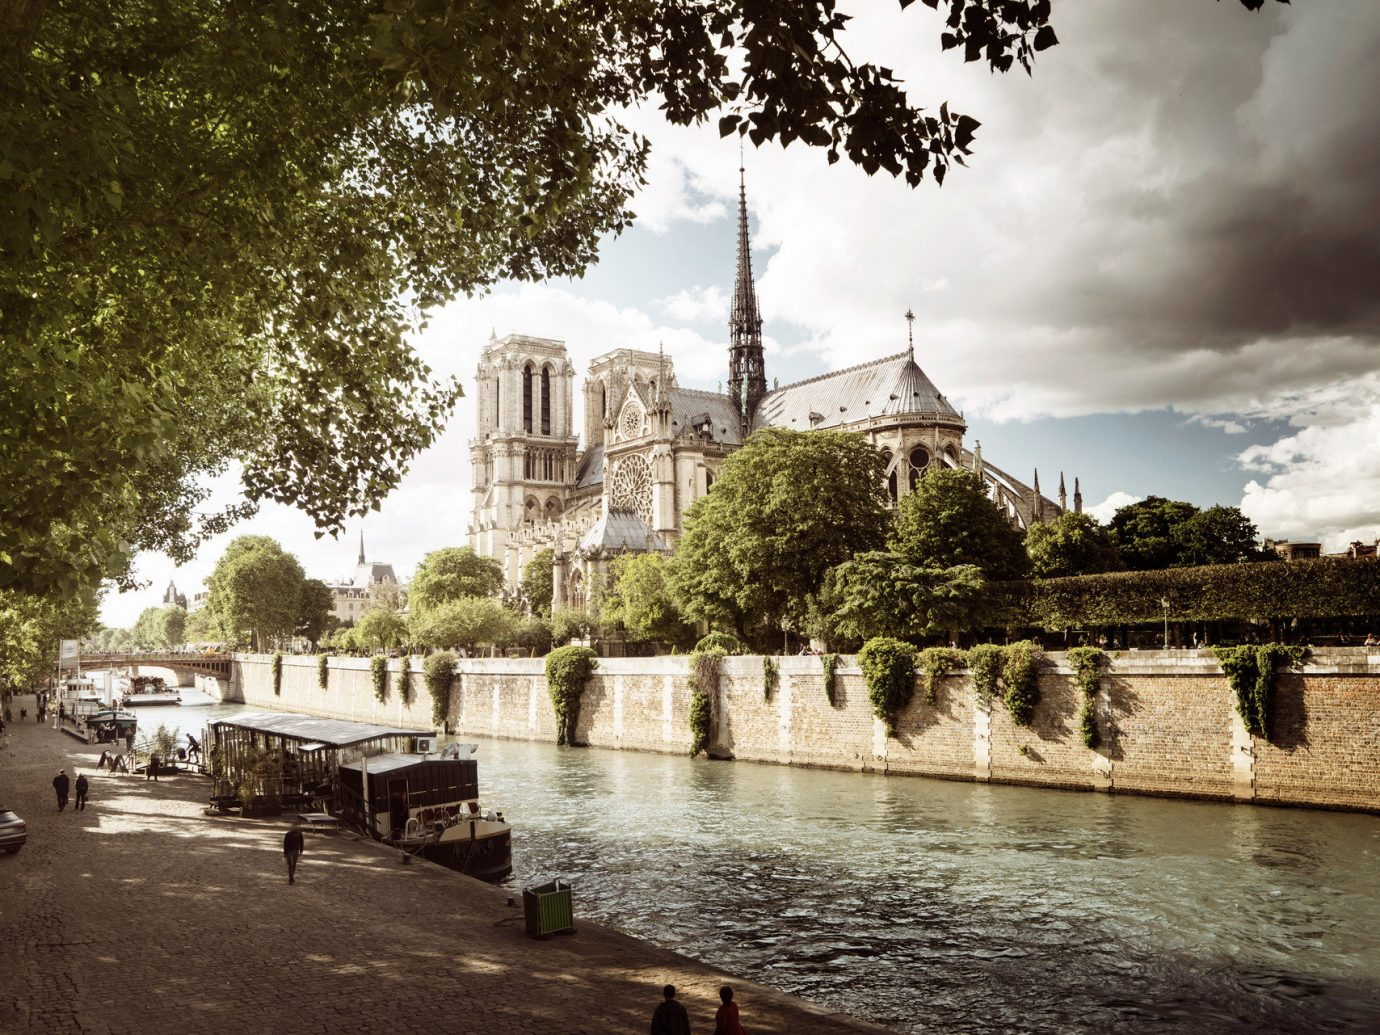 France Hotels News Paris Romance Travel Tips Travel Trends Trip Ideas outdoor tree water landmark urban area human settlement River reflection tourism château ancient history waterway cityscape water feature place of worship palace temple flower Ruins travel